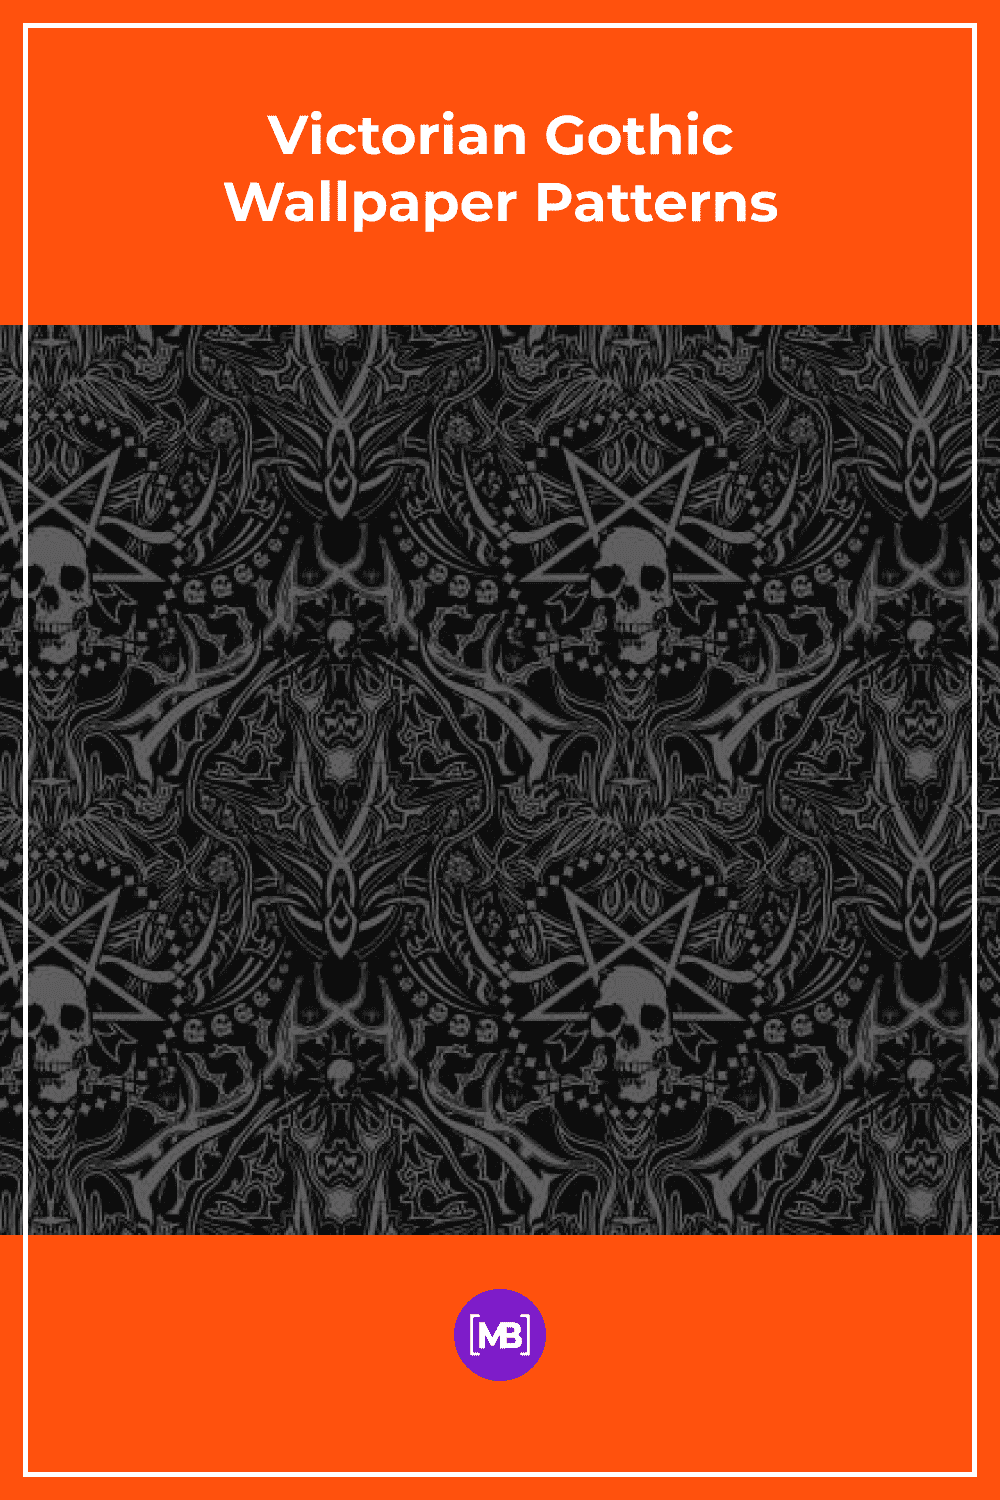 Victorian gothic style wallpaper.